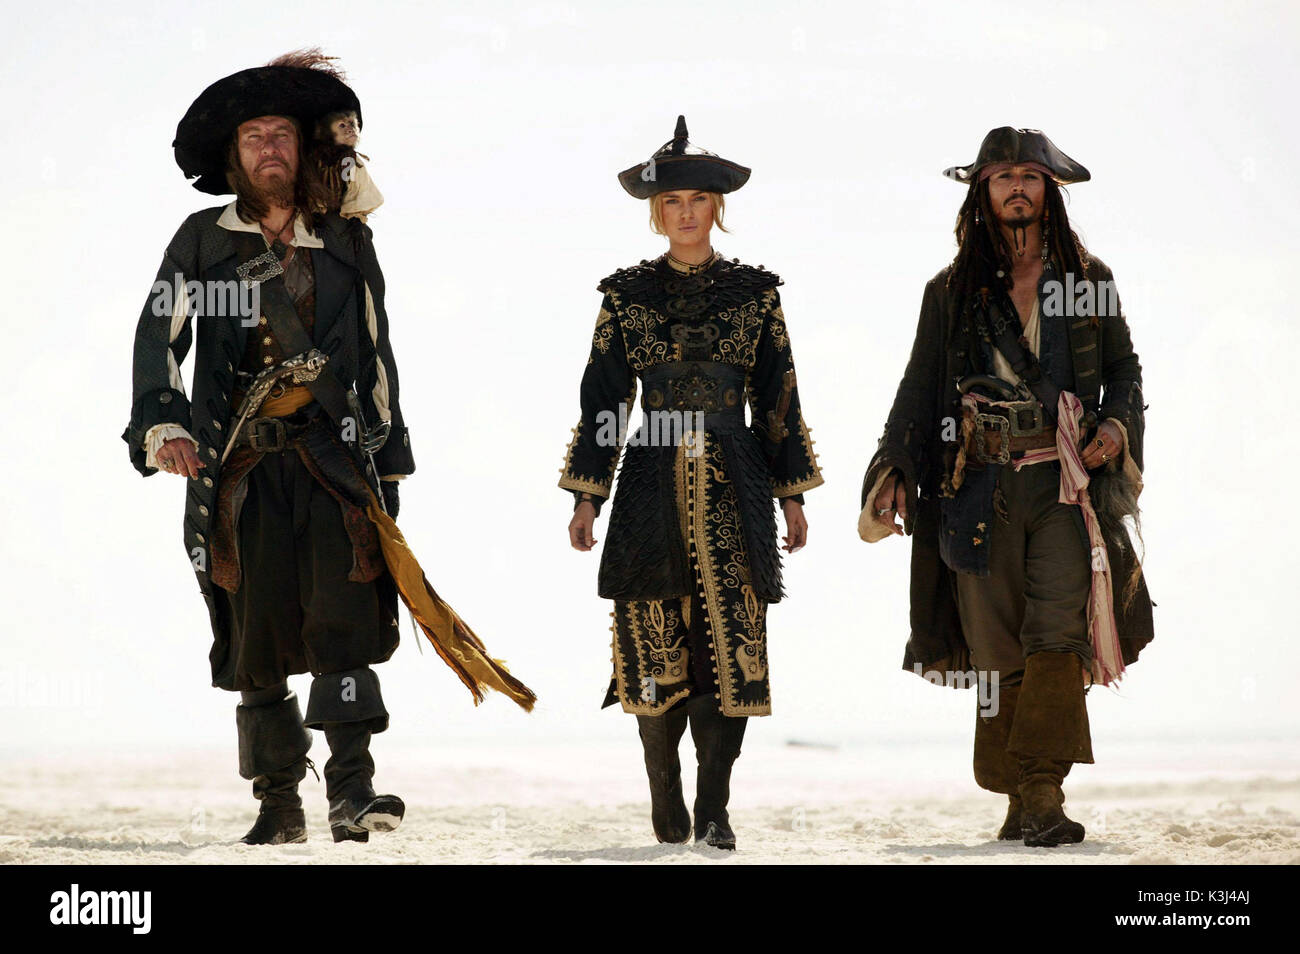 Pictured L-R: Captain Barbossa (Geoffrey Rush), Elizabeth Swan (KEIRA KNIGHTLEY), and Captain Jack Sparrow (Johnny Depp), in a scene from PIRATES OF THE CARIBBEAN: AT WORLD'S END, directed by Gore Verbinski and produced by Jerry Bruckheimer, from a screenplay written by Ted Elliott & Terry Rossio. PIRATES OF THE CARIBBEAN: AT WORLD'S END [US 2007]  aka PIRATES OF THE CARIBBEAN 3  GEOFFREY RUSH as Captain Barbossa,  KEIRA KNIGHTLEY as Elizabeth Swan,  JOHNNY DEPP as Captain Jack Sparrow  Pictured L-R: Captain Barbossa (Geoffrey Rush), Elizabeth Swan (KEIRA KNIGHTLEY), and Captain Jack Sparr - Stock Image